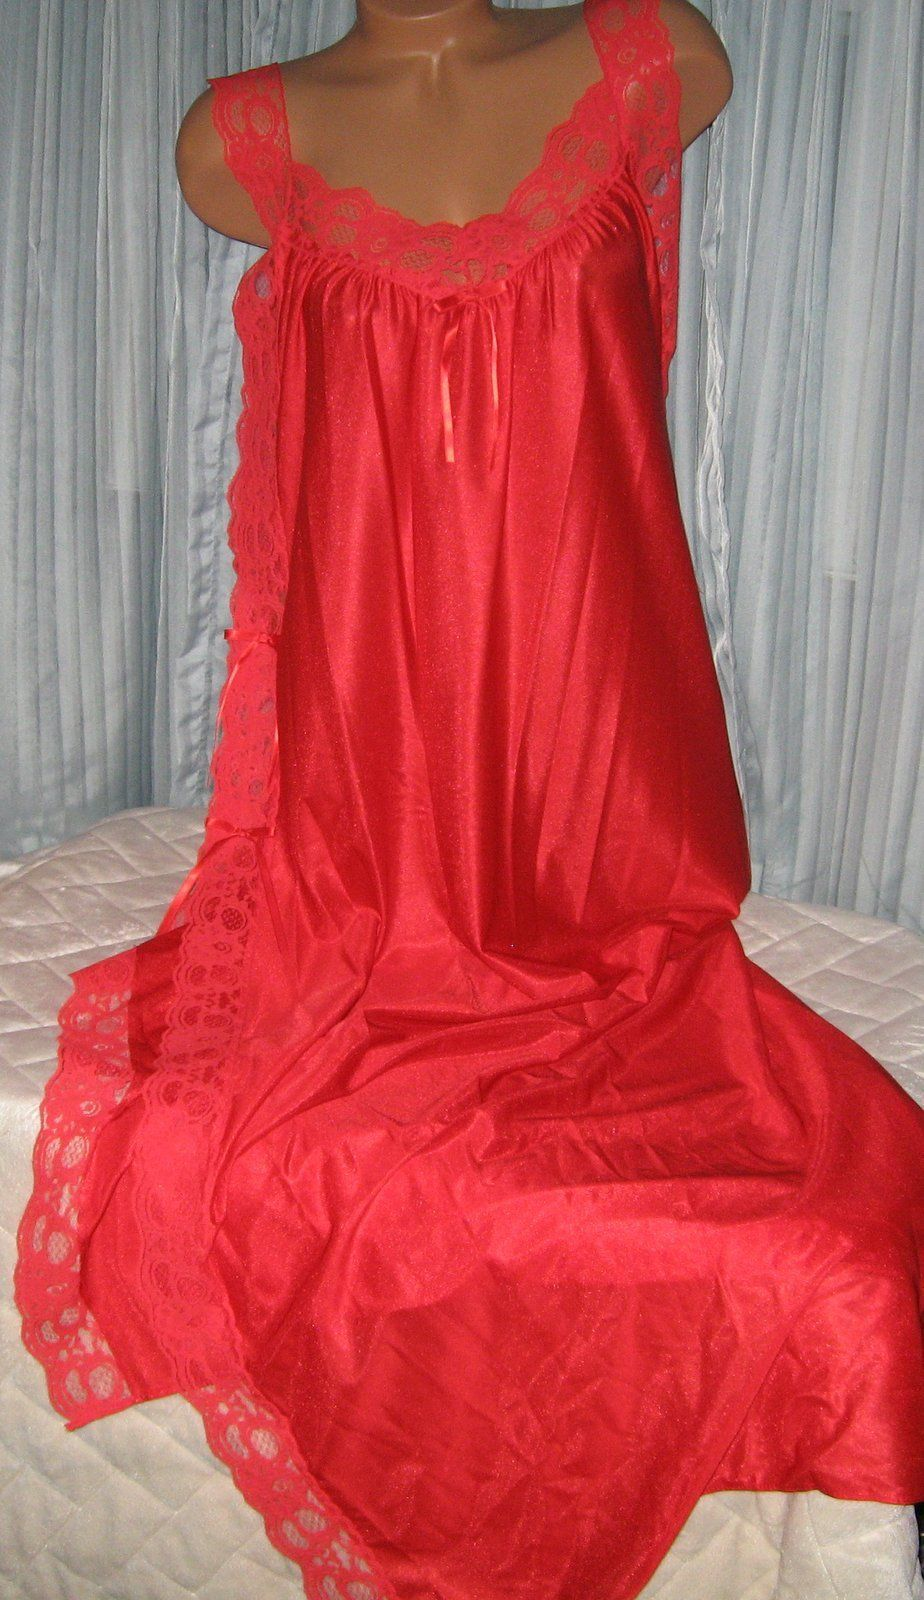 Red Nylon Lace Side Toga Style Long Nightgown M Lingerie Sleepwear